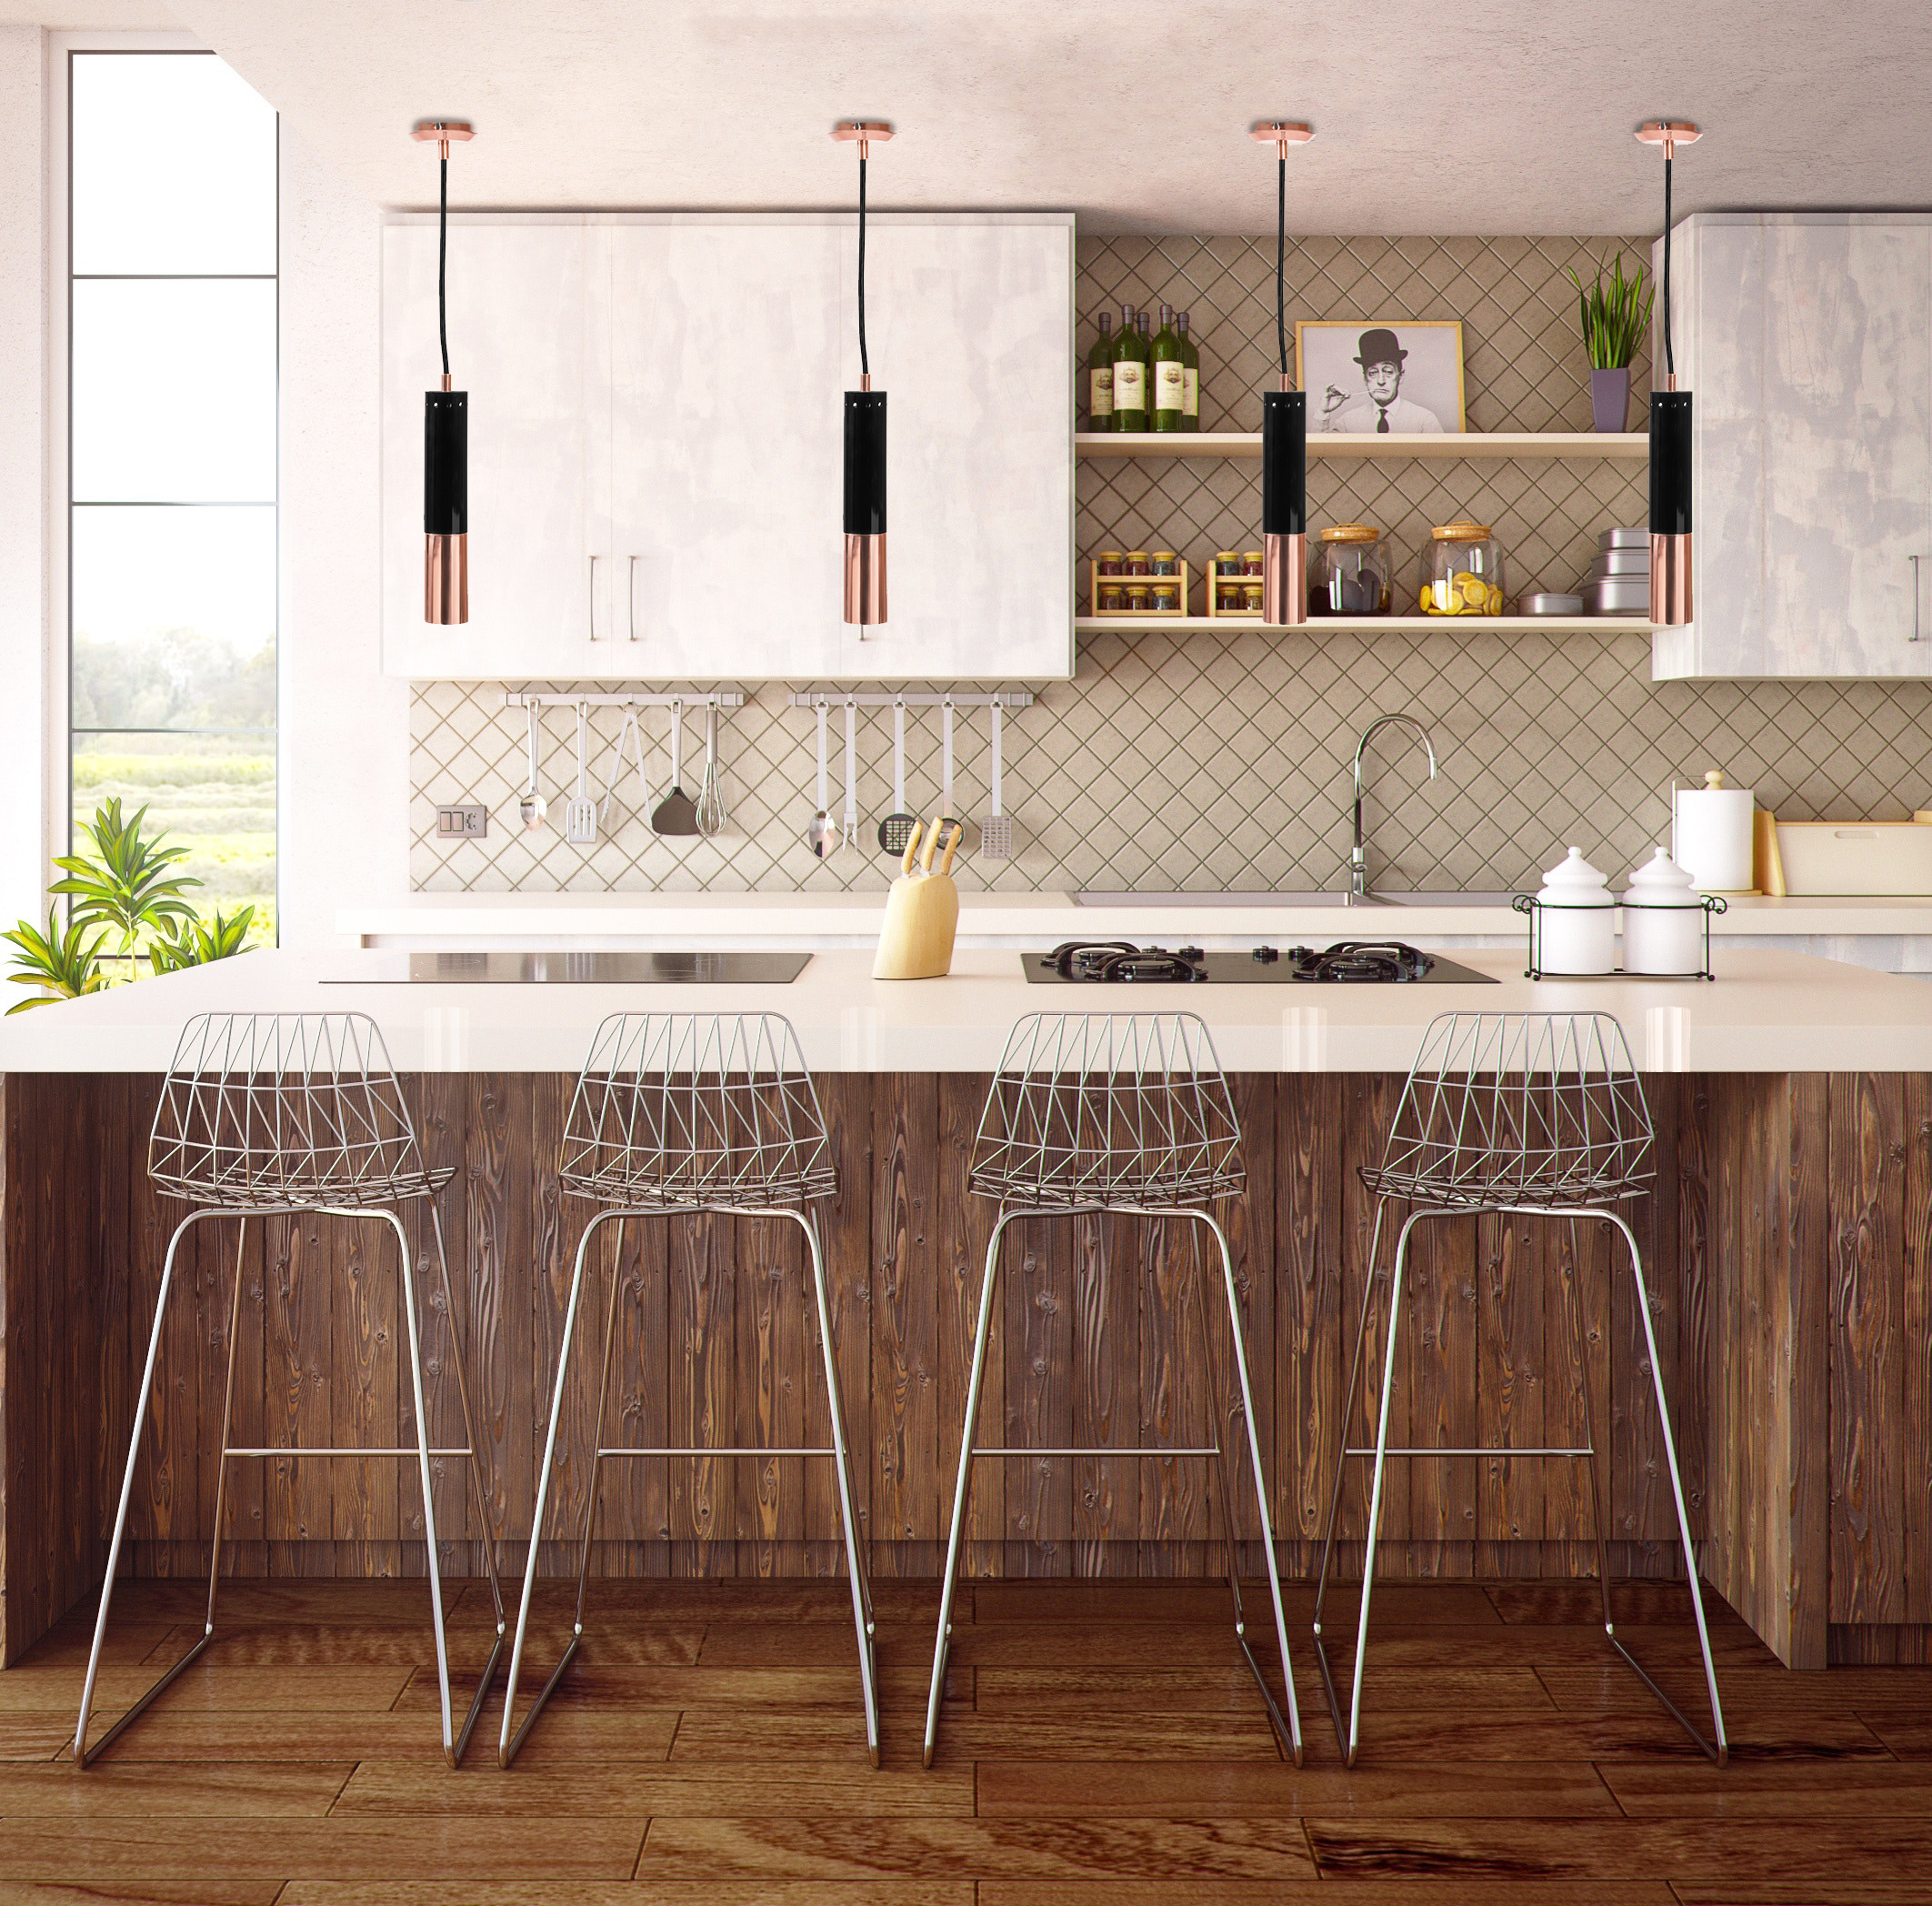 industrial style lighting This Industrial Style Lighting in The Heart of Central London is Making Us Want To Renovate Our Home Décor! Check Out! ike ambiente